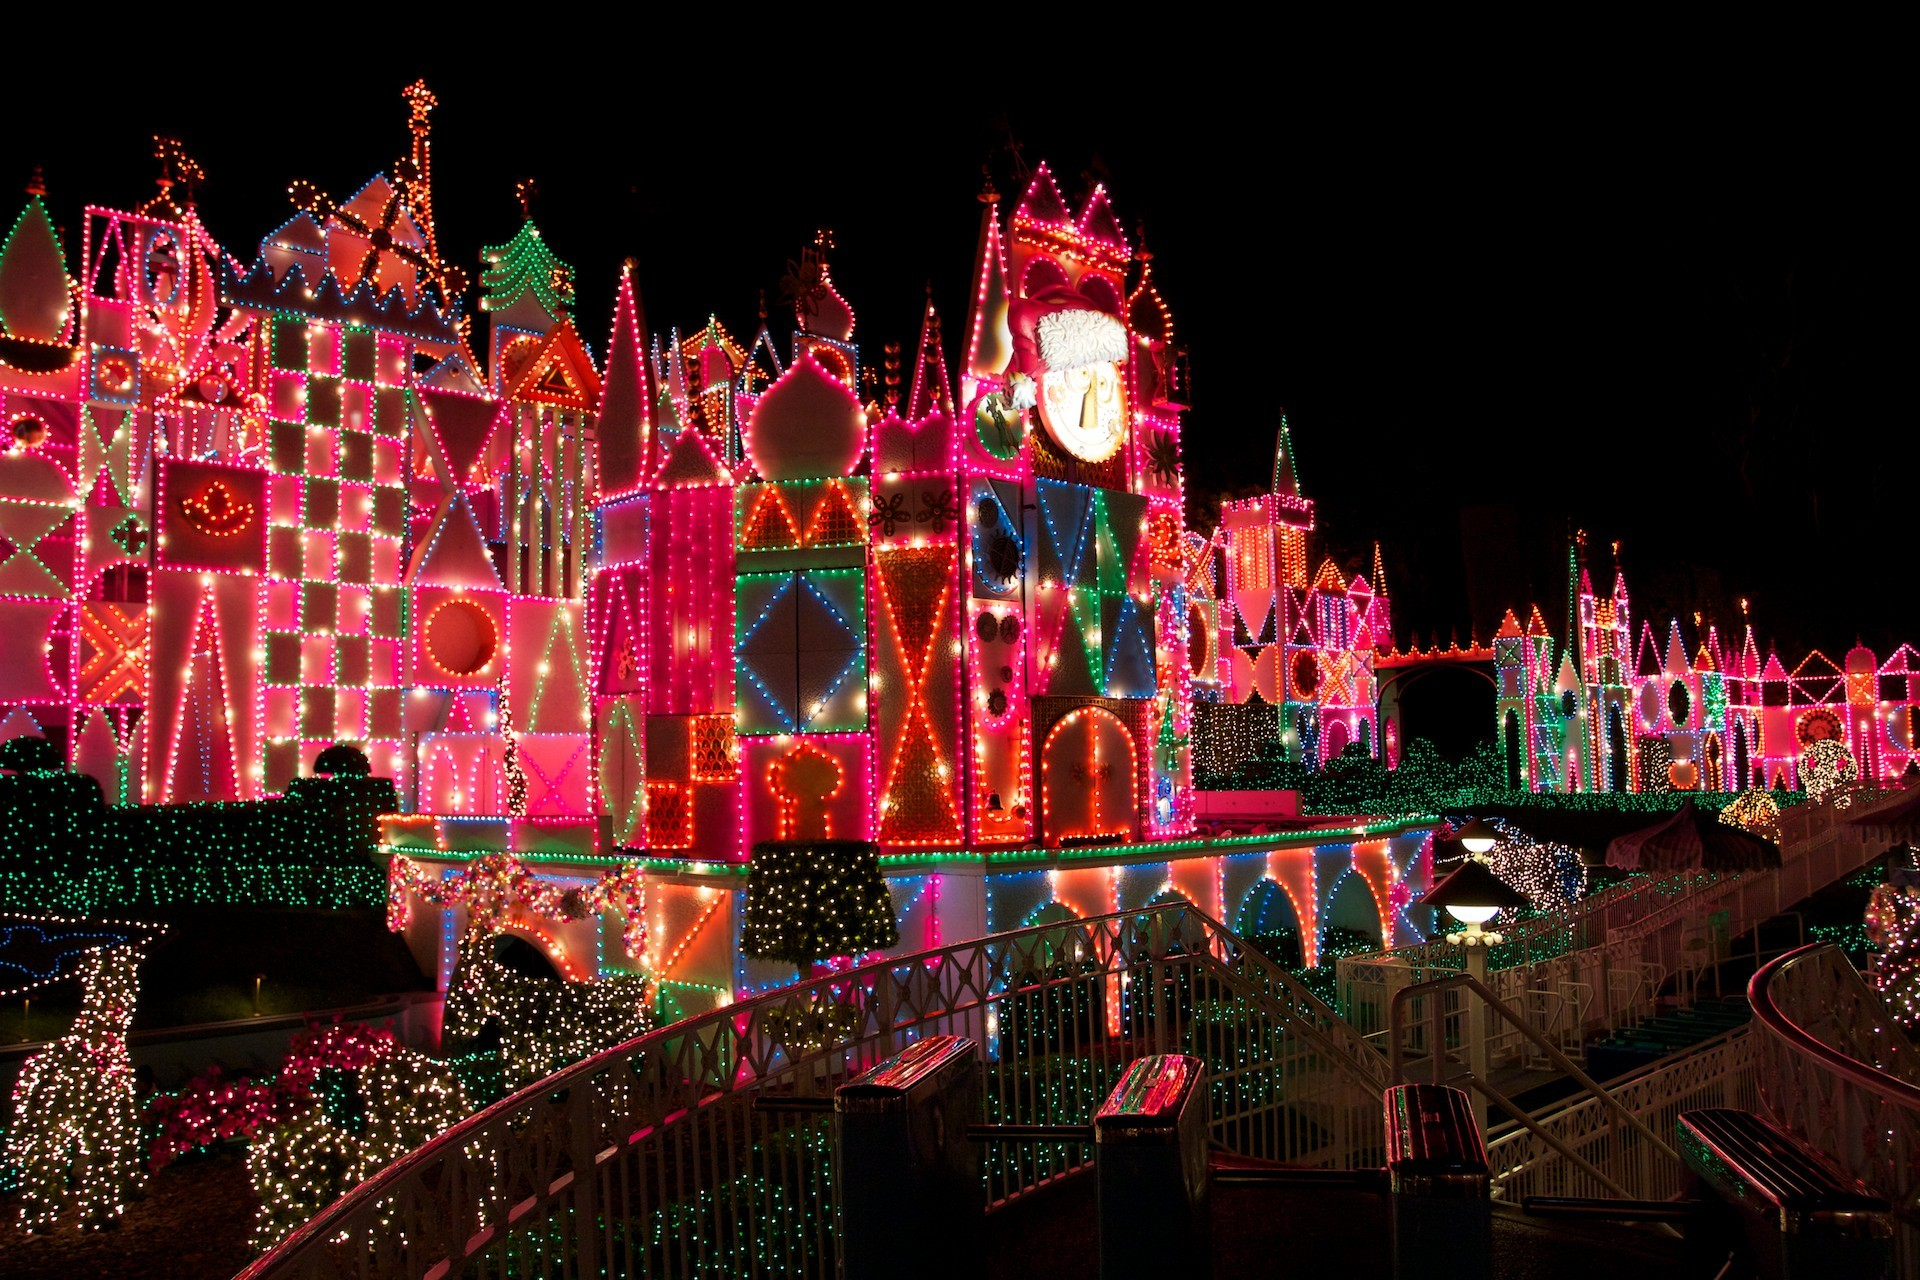 1920x1280 It's a Small World attraction at Disneyland at night decorated for Christmas  wallpaper